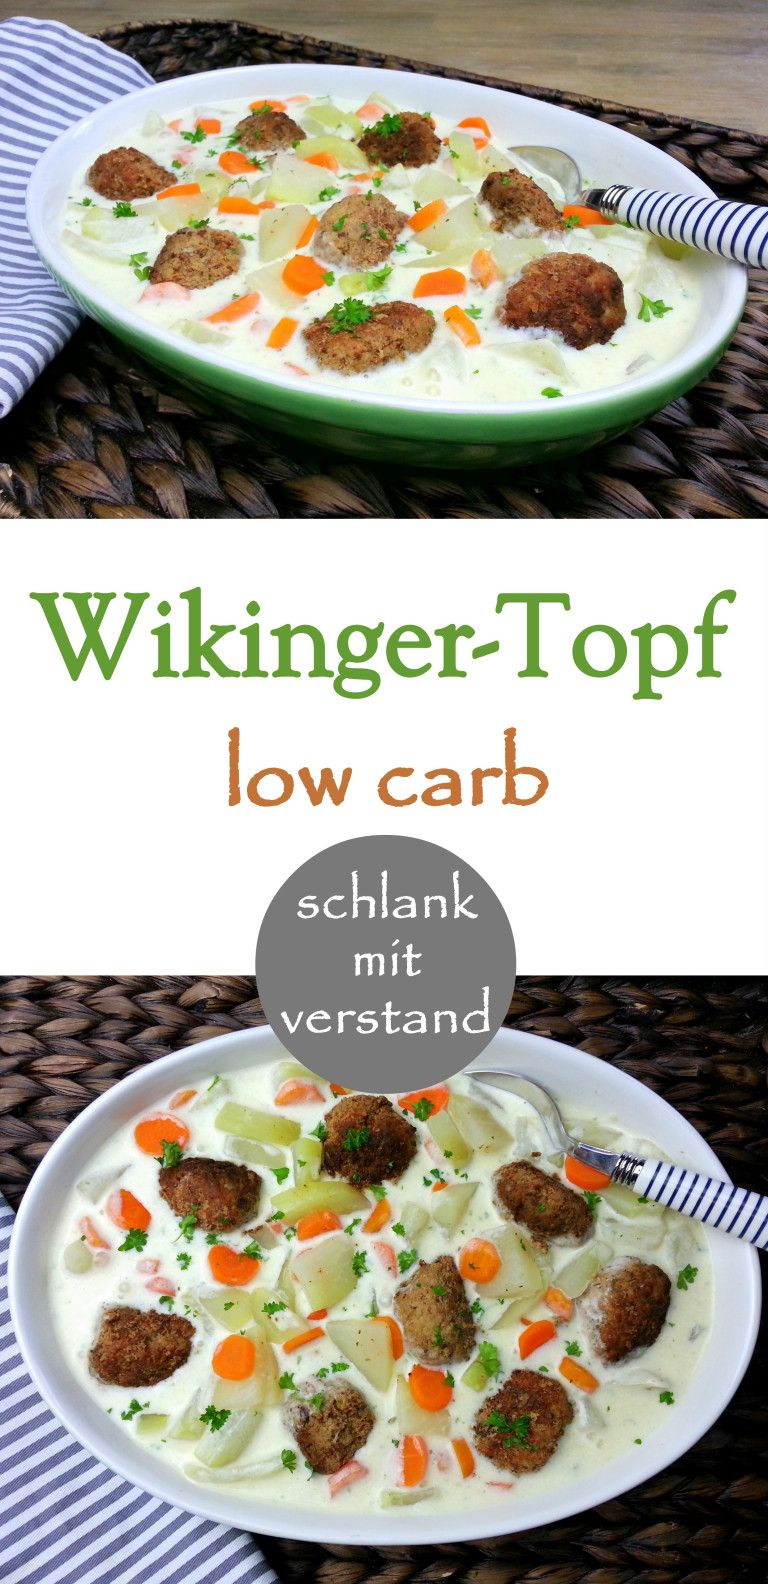 Wikinger-Topf low carb #nocarbdiets